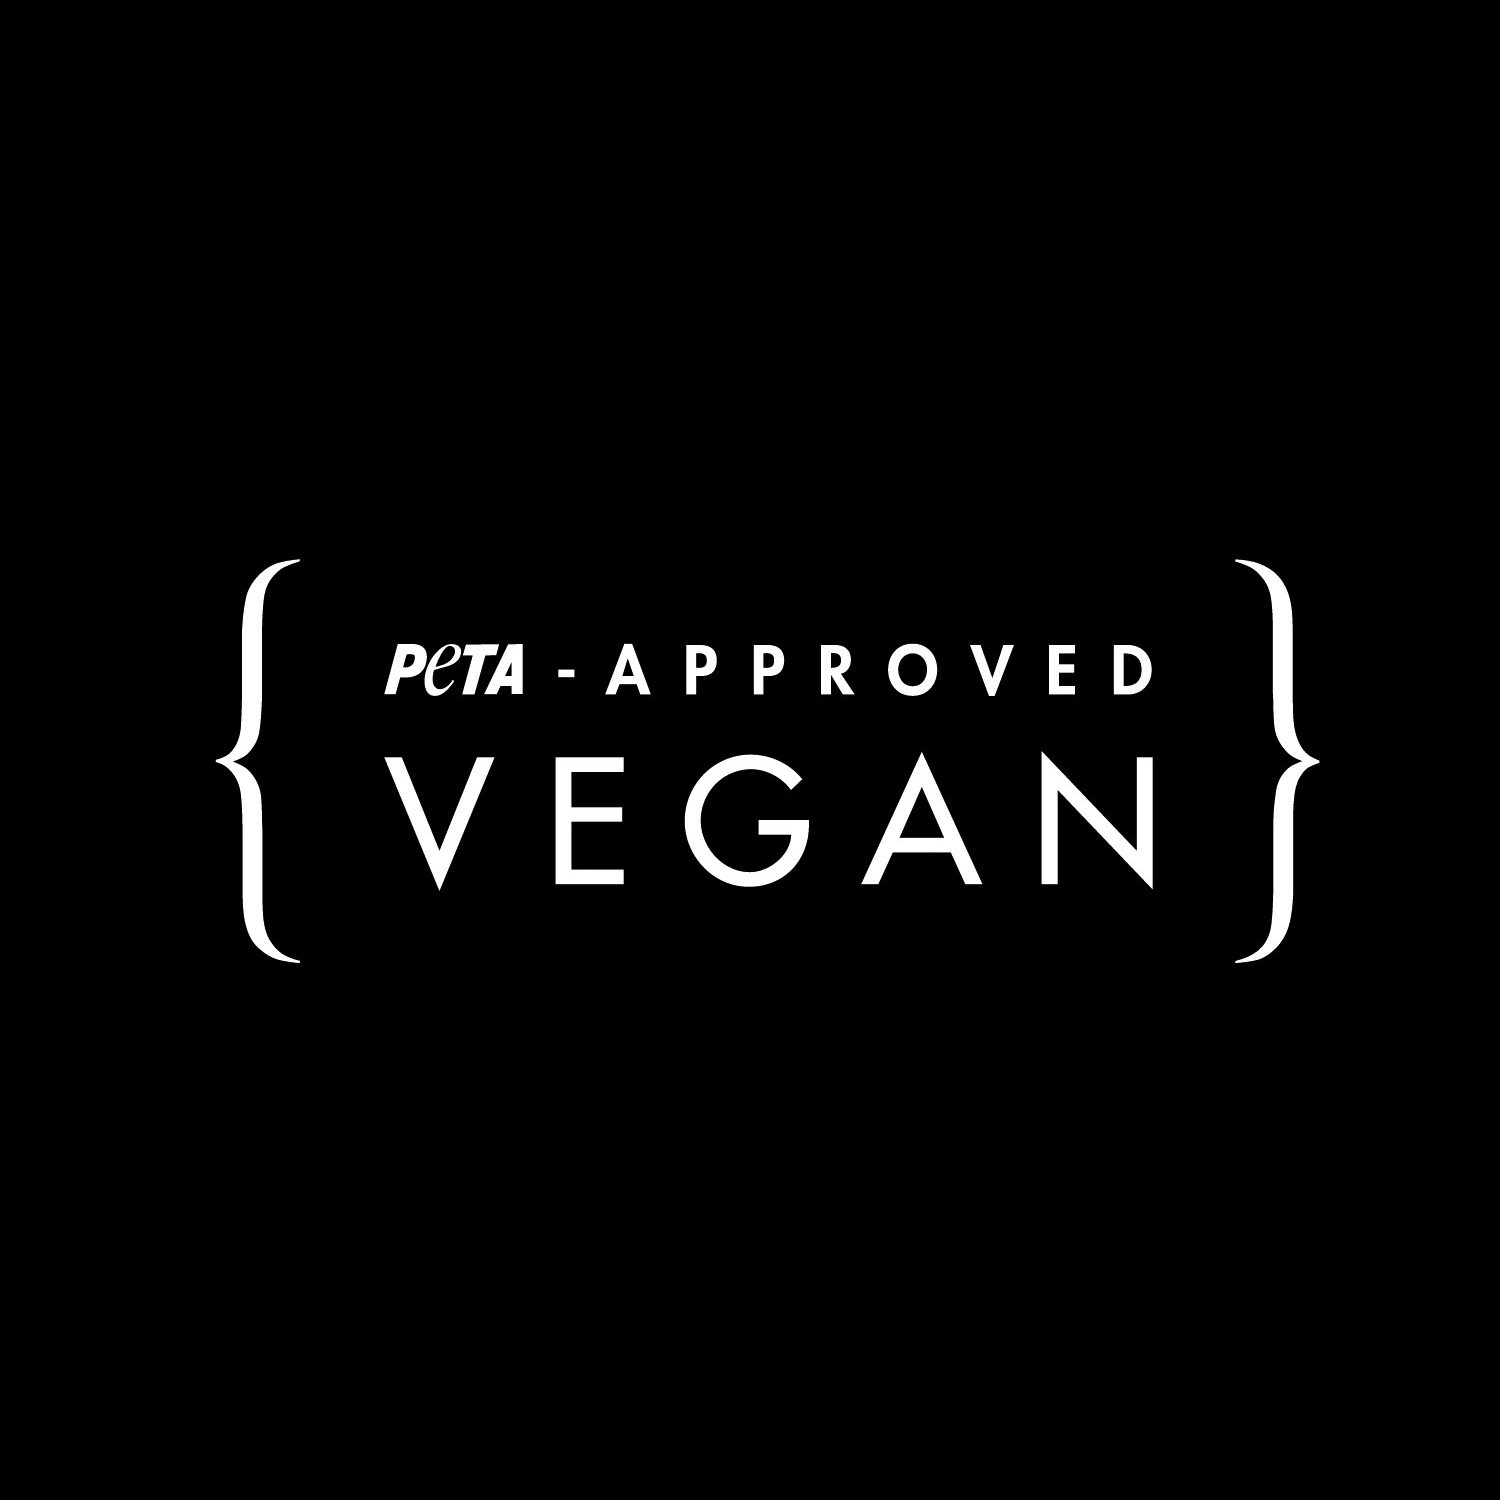 logo peta approved vegan